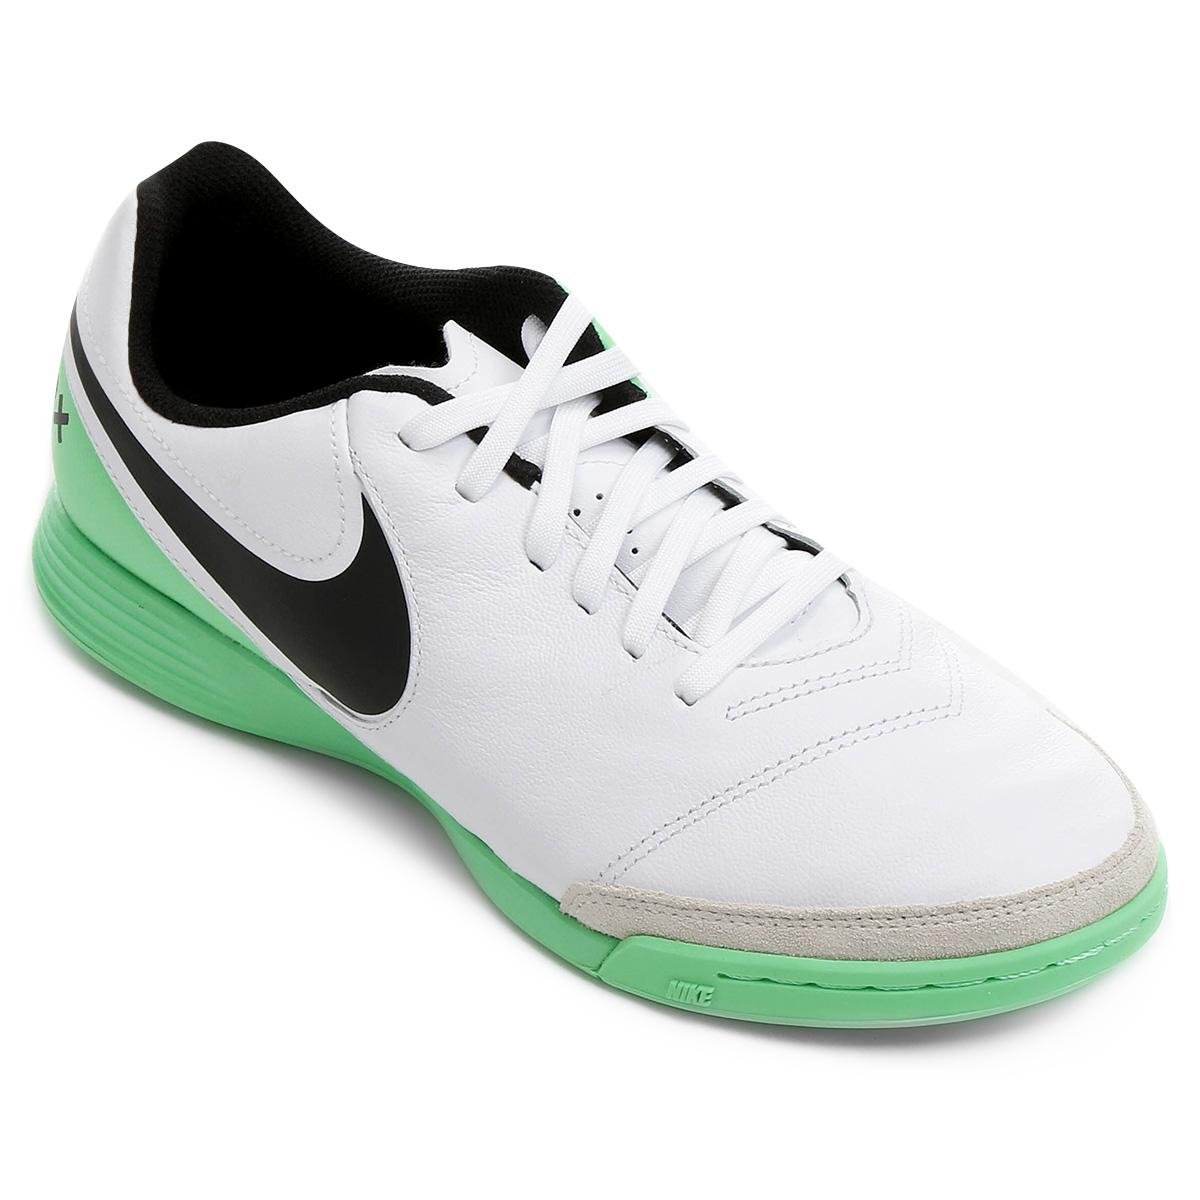 various colors eb57d 1d1e6 ... chuteira futsal nike tiempo genio 2 leather ic masculina